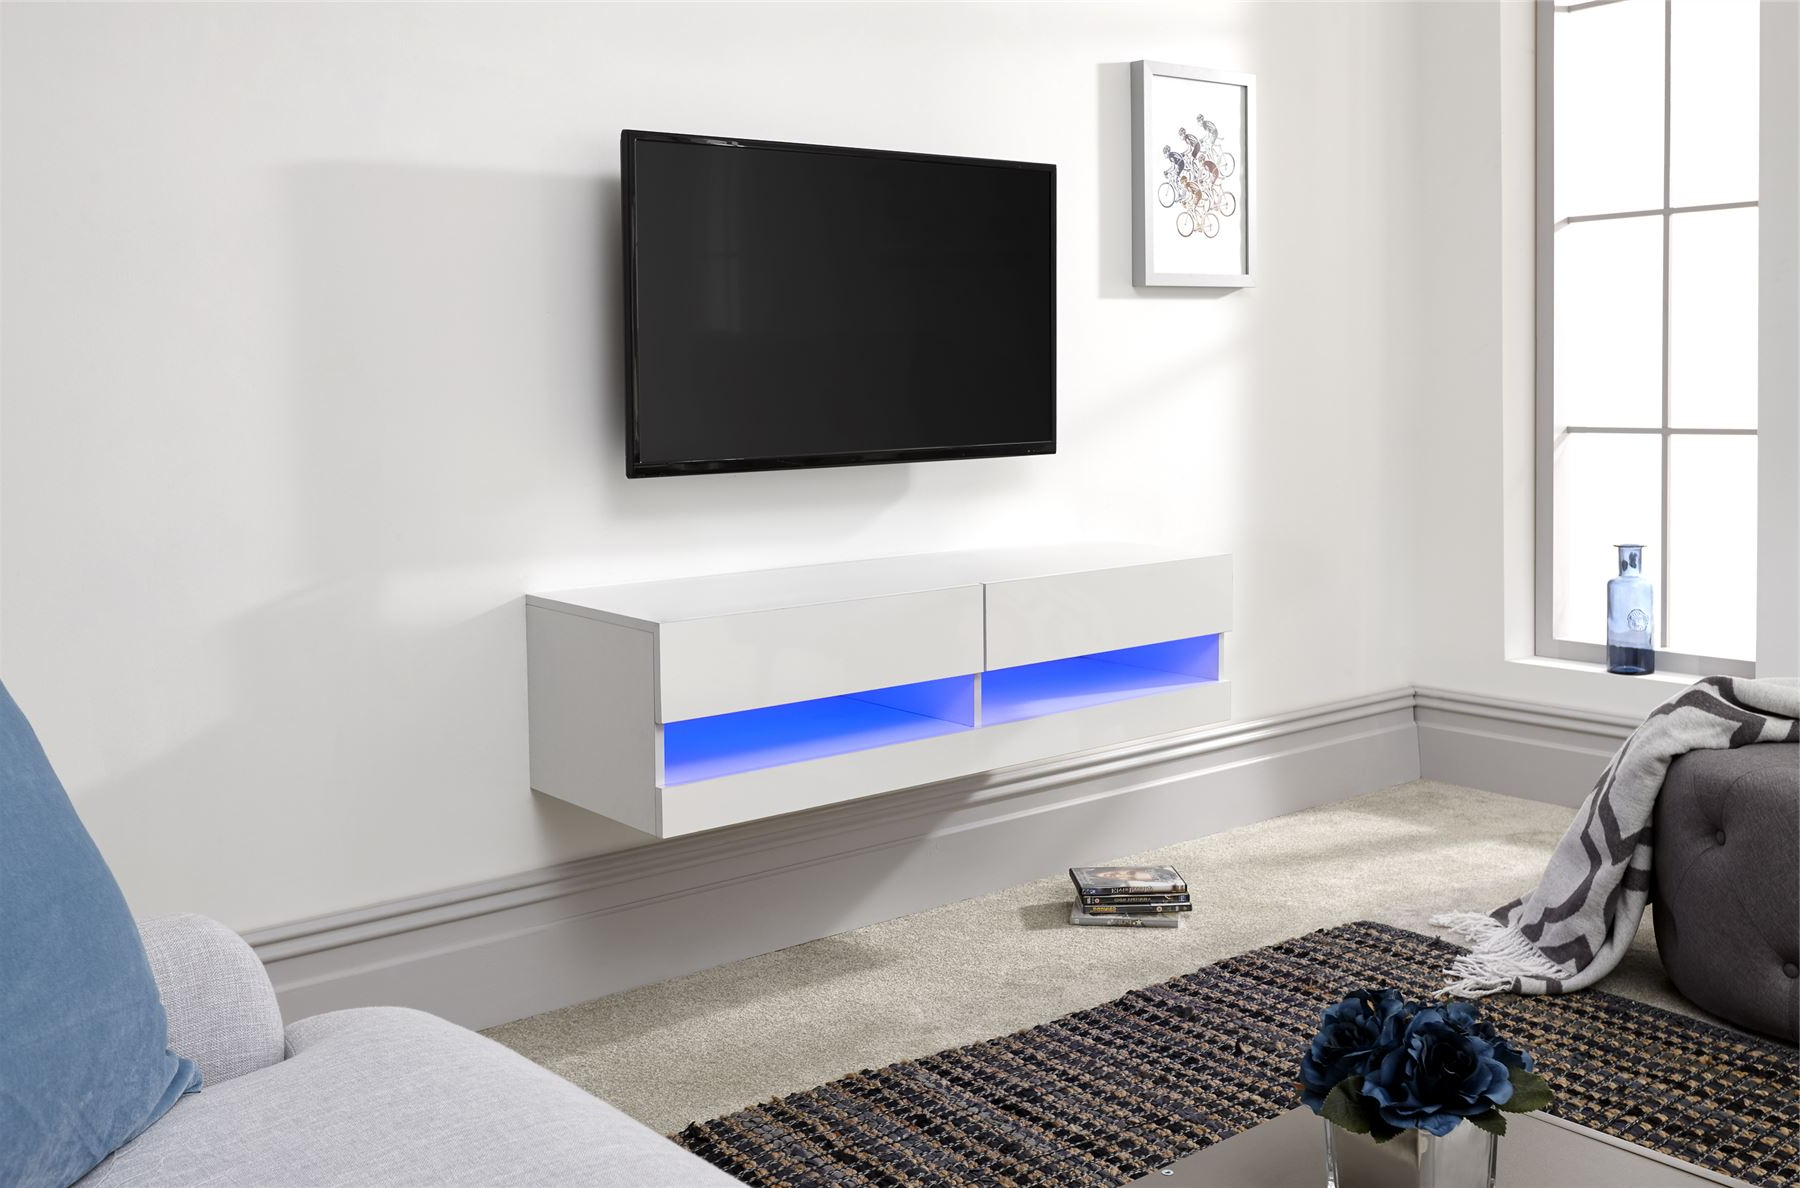 Galicia 120cm 150cm 180cm Wall Tv Unit Stand W/ Led Lcd Regarding Galicia 180cm Led Wide Wall Tv Unit Stands (View 3 of 20)